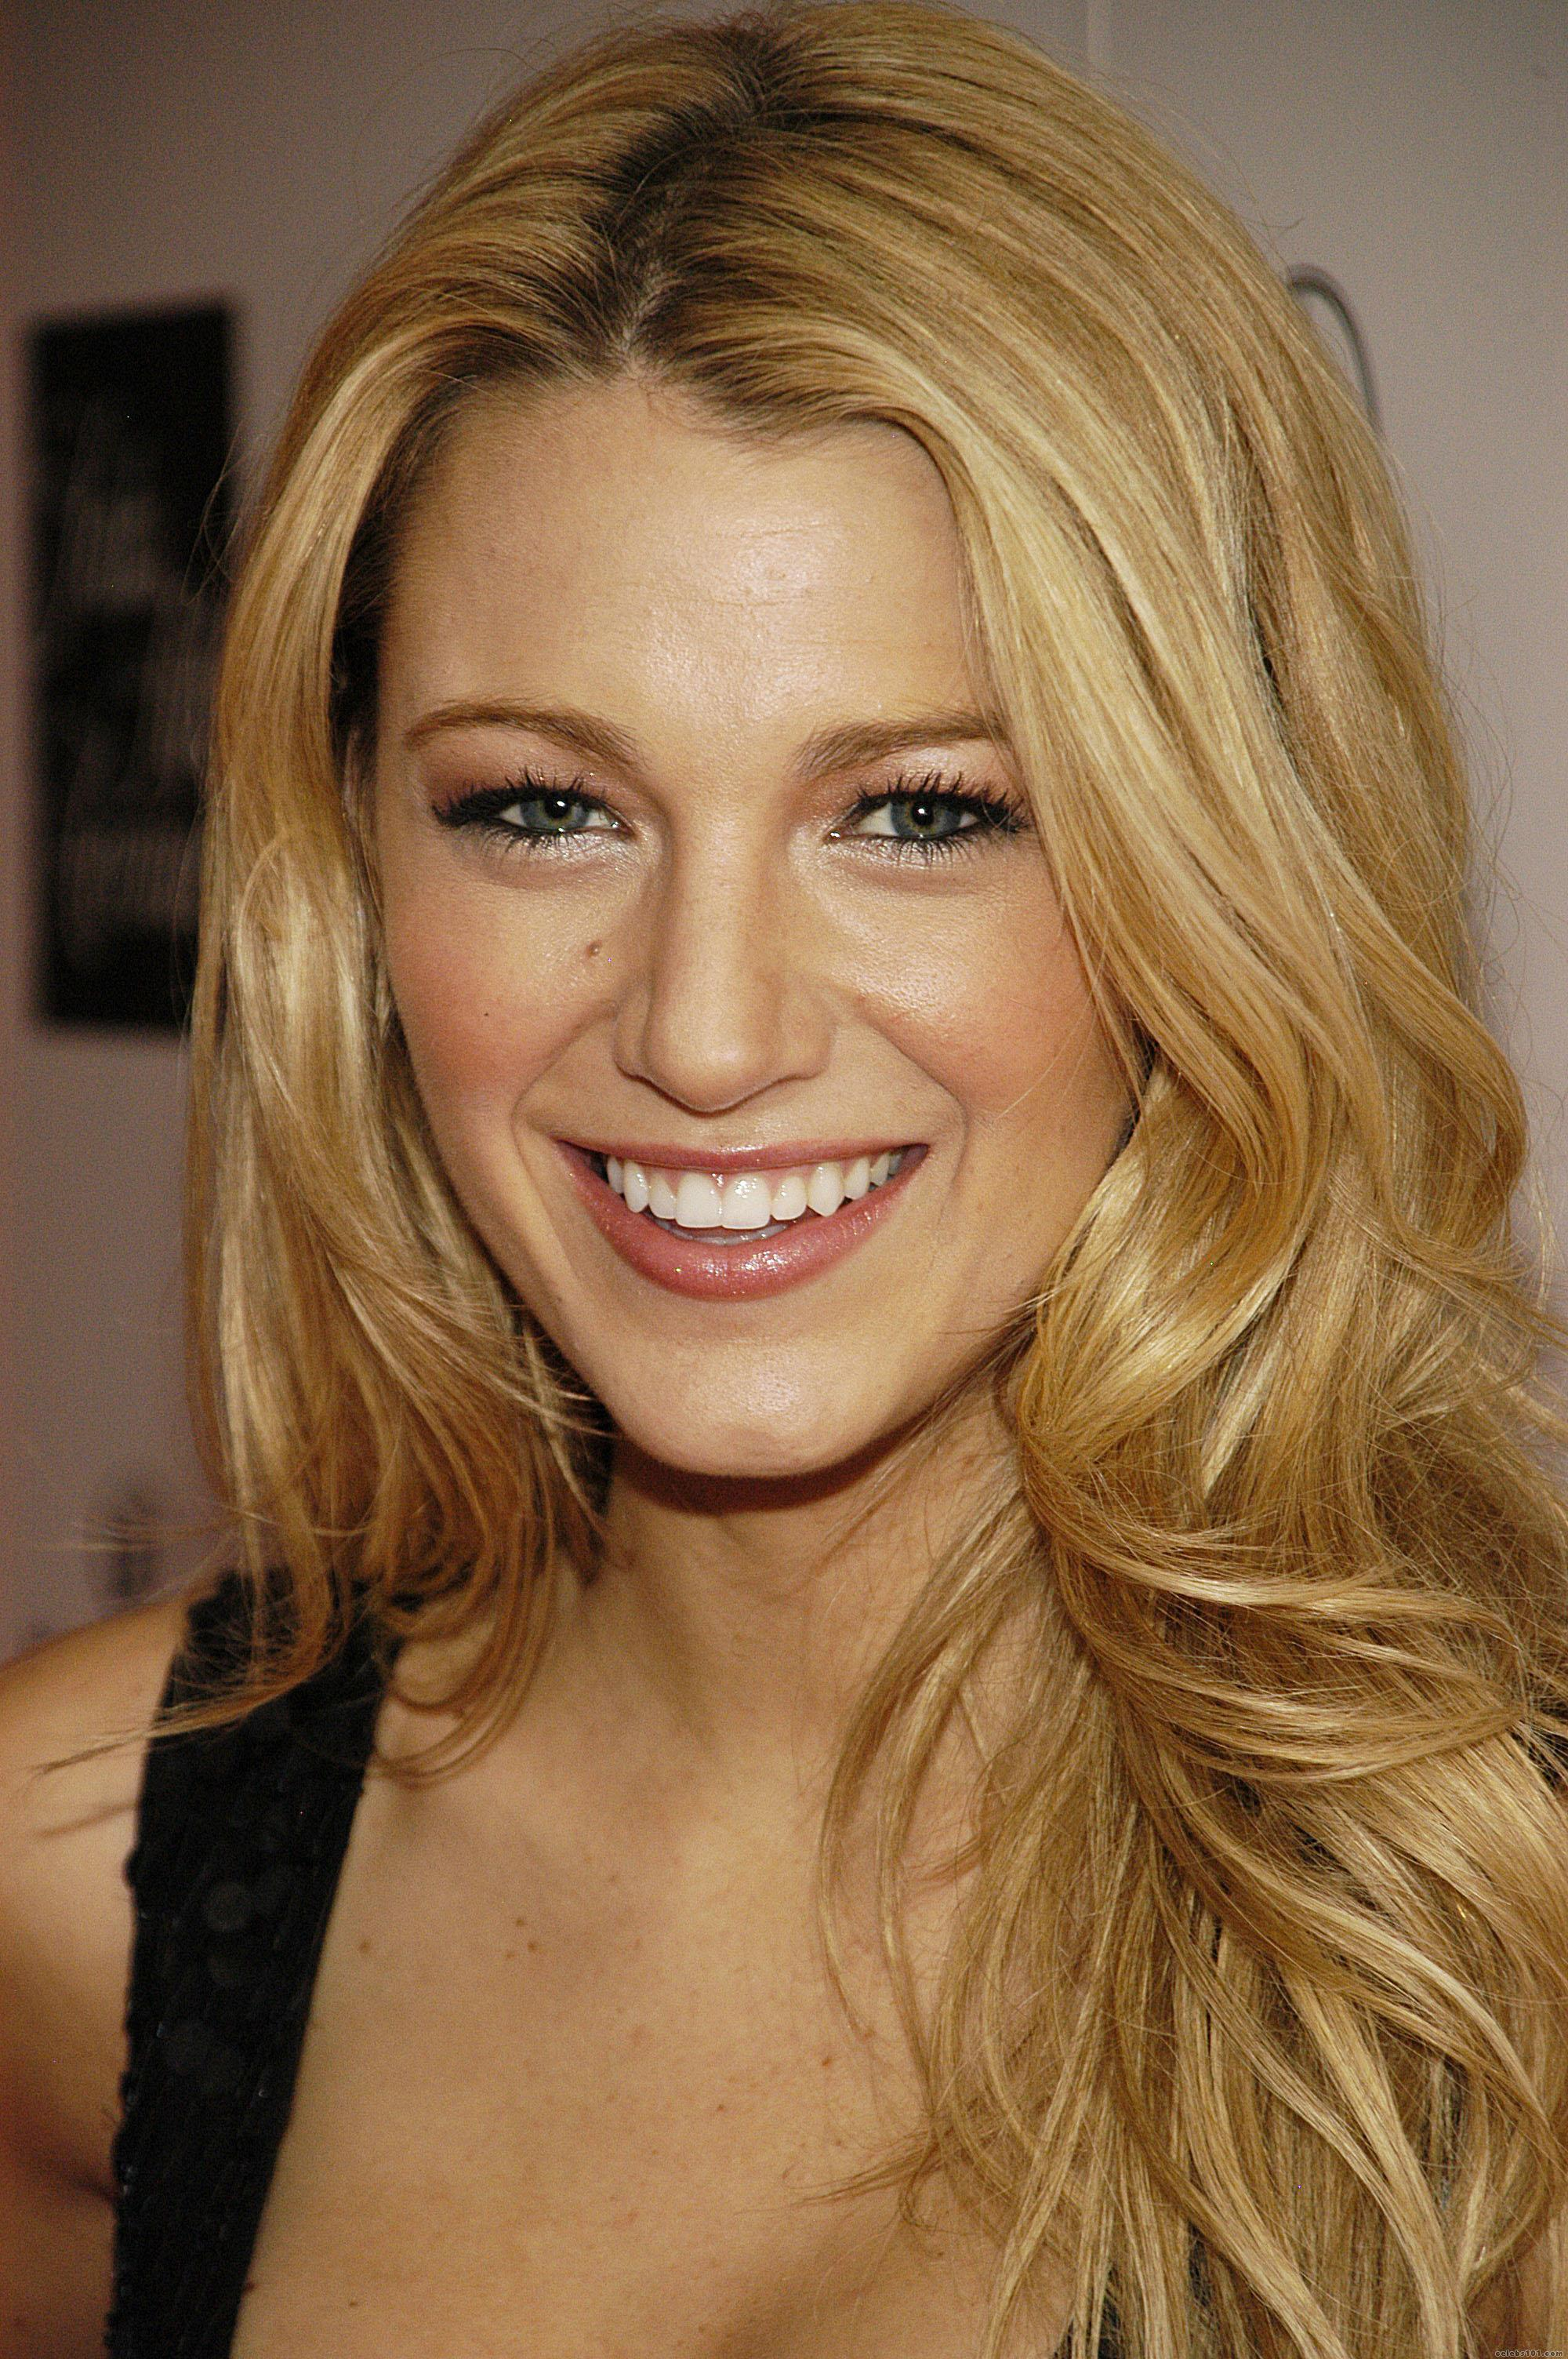 Blake Lively Wallpaper...